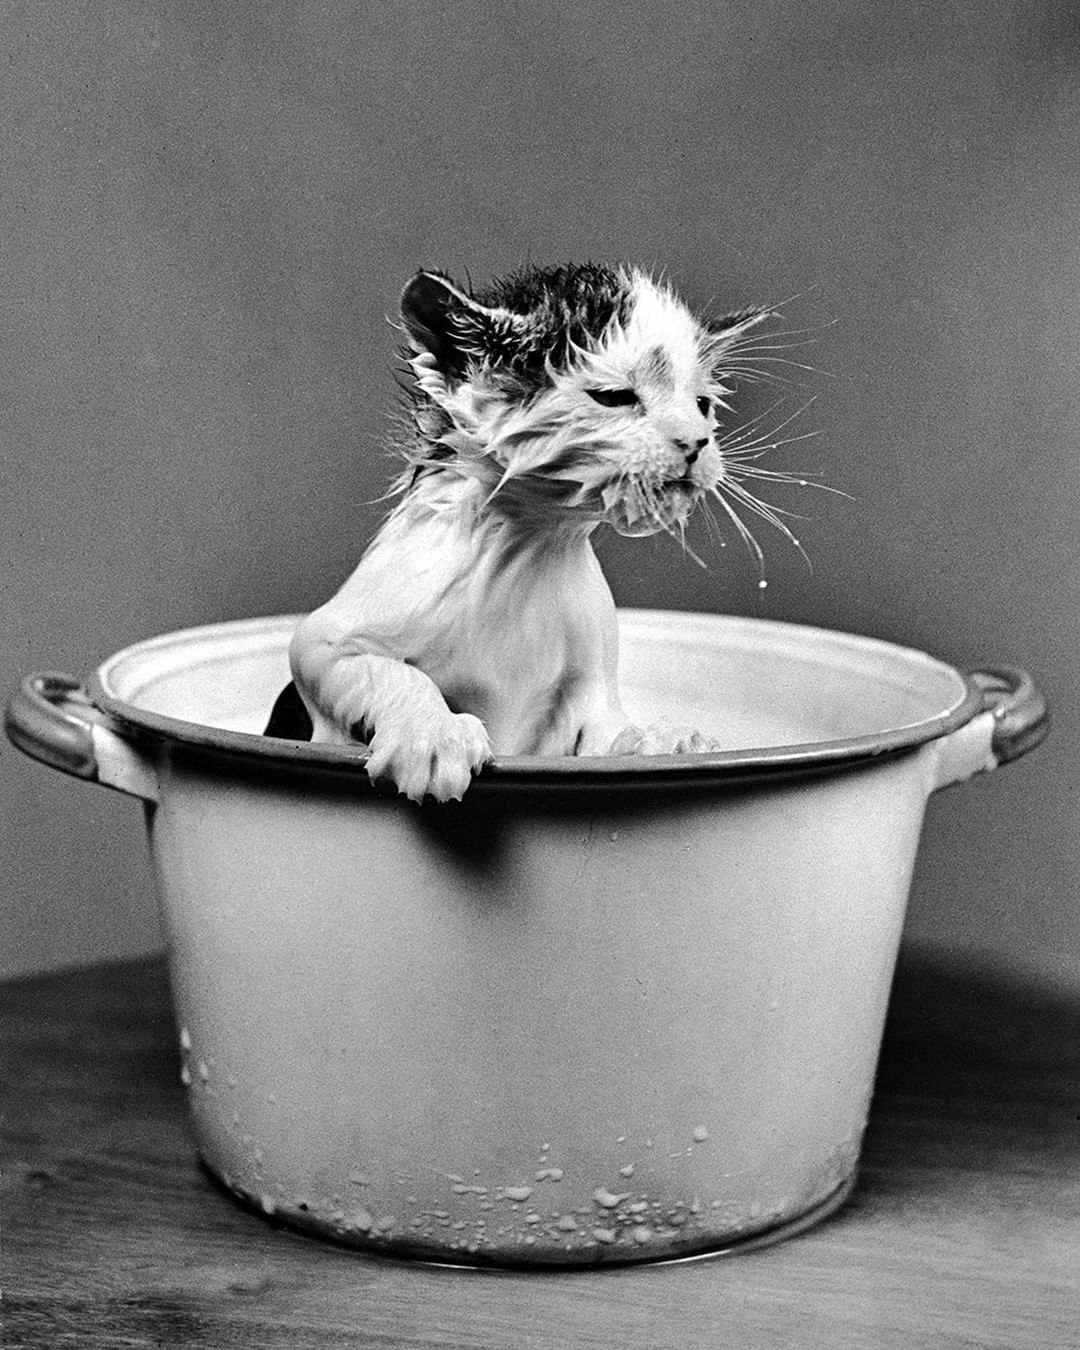 Life On Instagram An Adorable Kitten Emerging From A Bucket Of Milk By The Great Nina Leen 1940 Nina Leen The Life Picture Collect Kittens Cats Animals